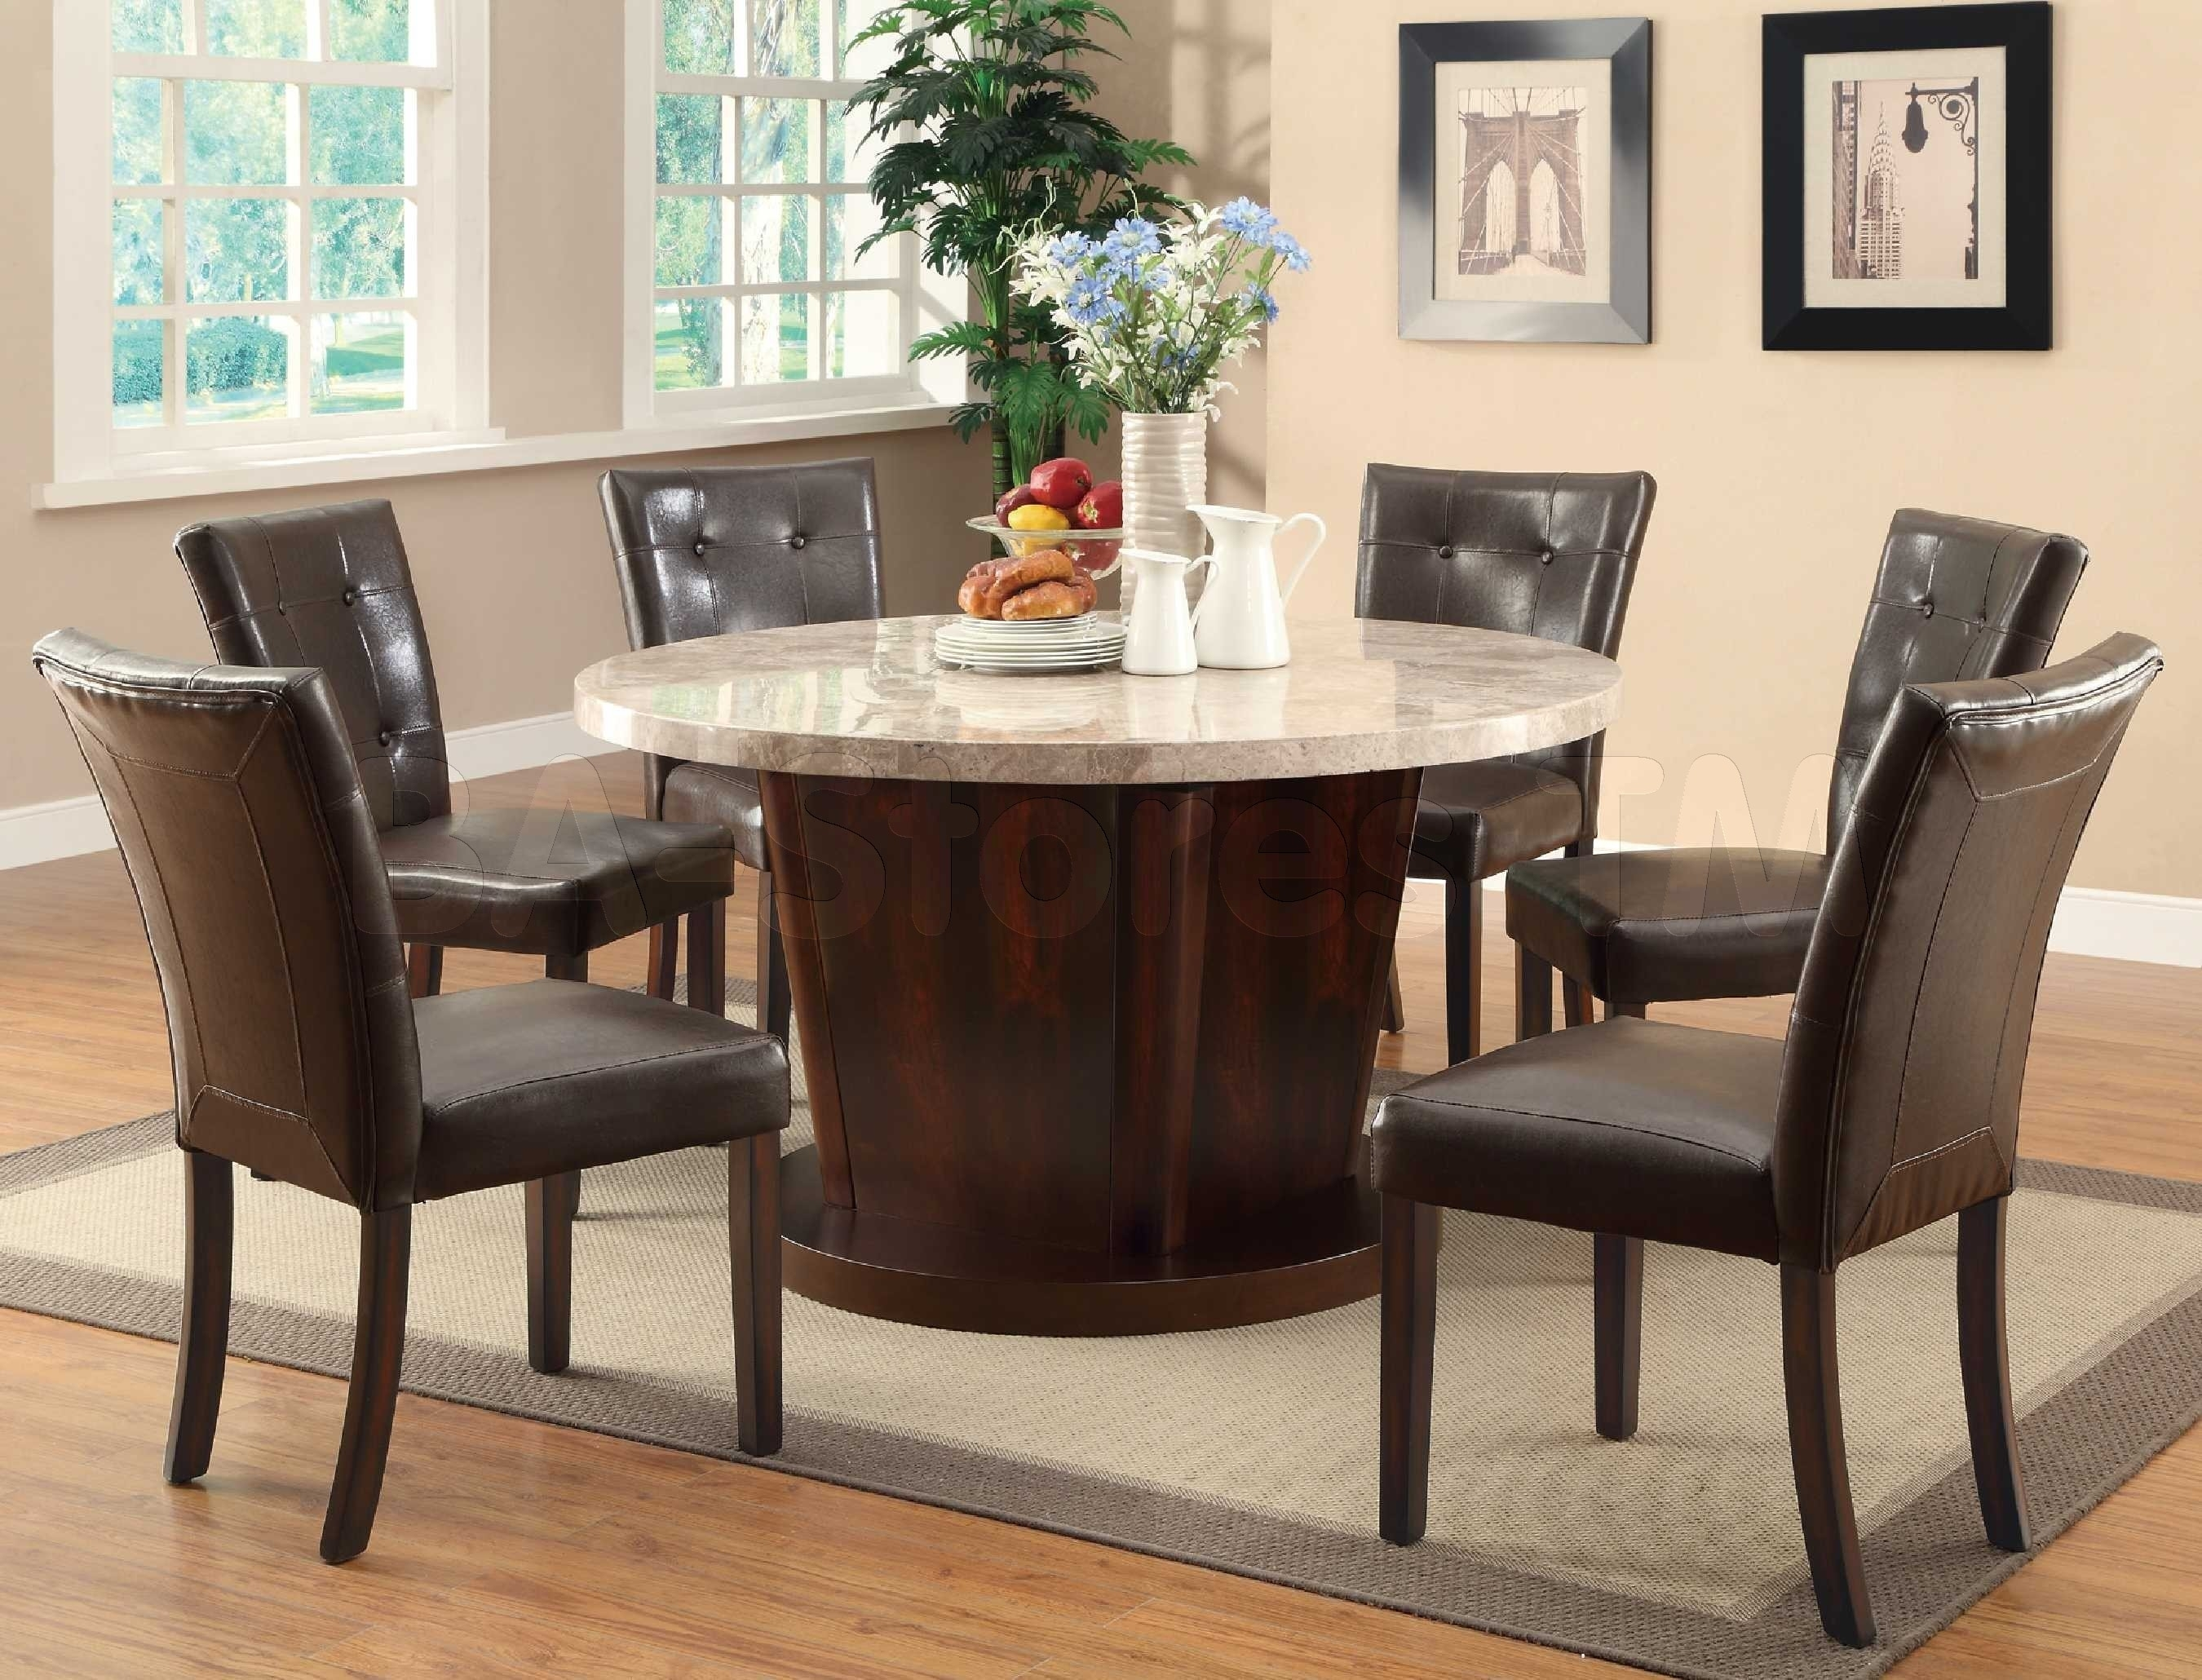 Decorating Nice Dining Table Set 6 Seater Round Room Sets For Home Throughout Most Recent Candice Ii Round Dining Tables (Image 13 of 20)